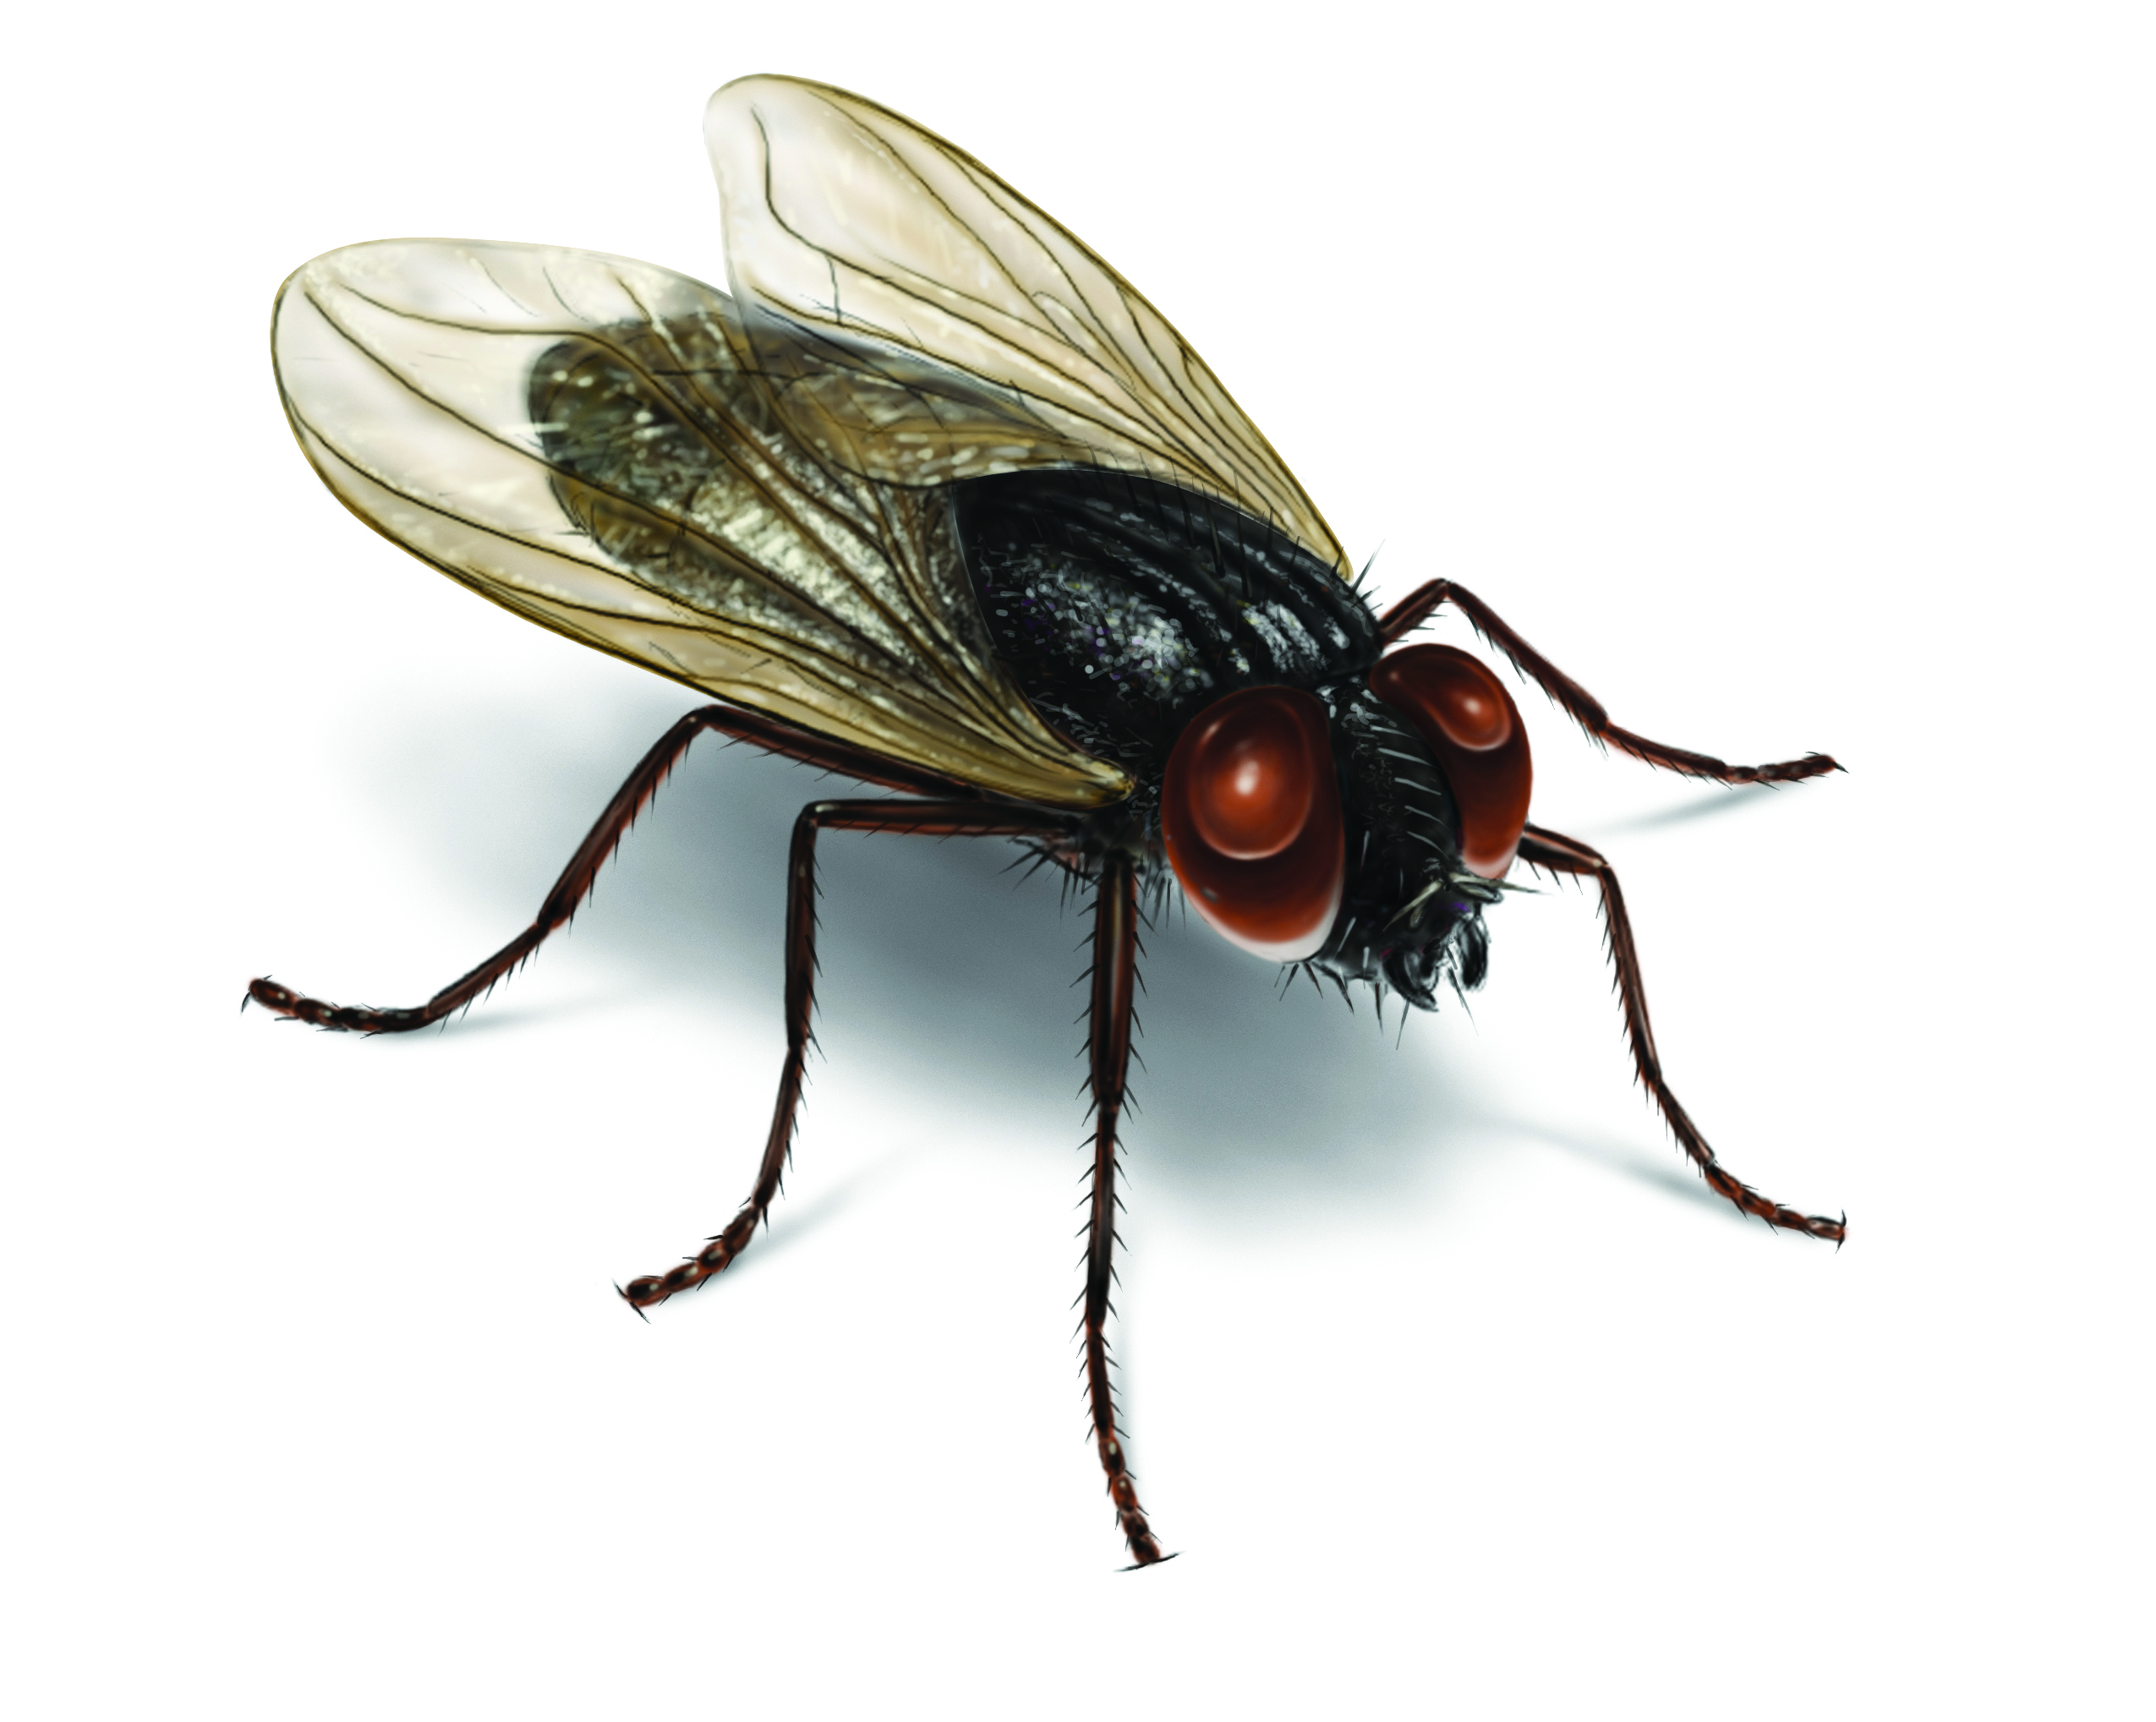 House Fly Control & Facts: Get Rid of House Flies